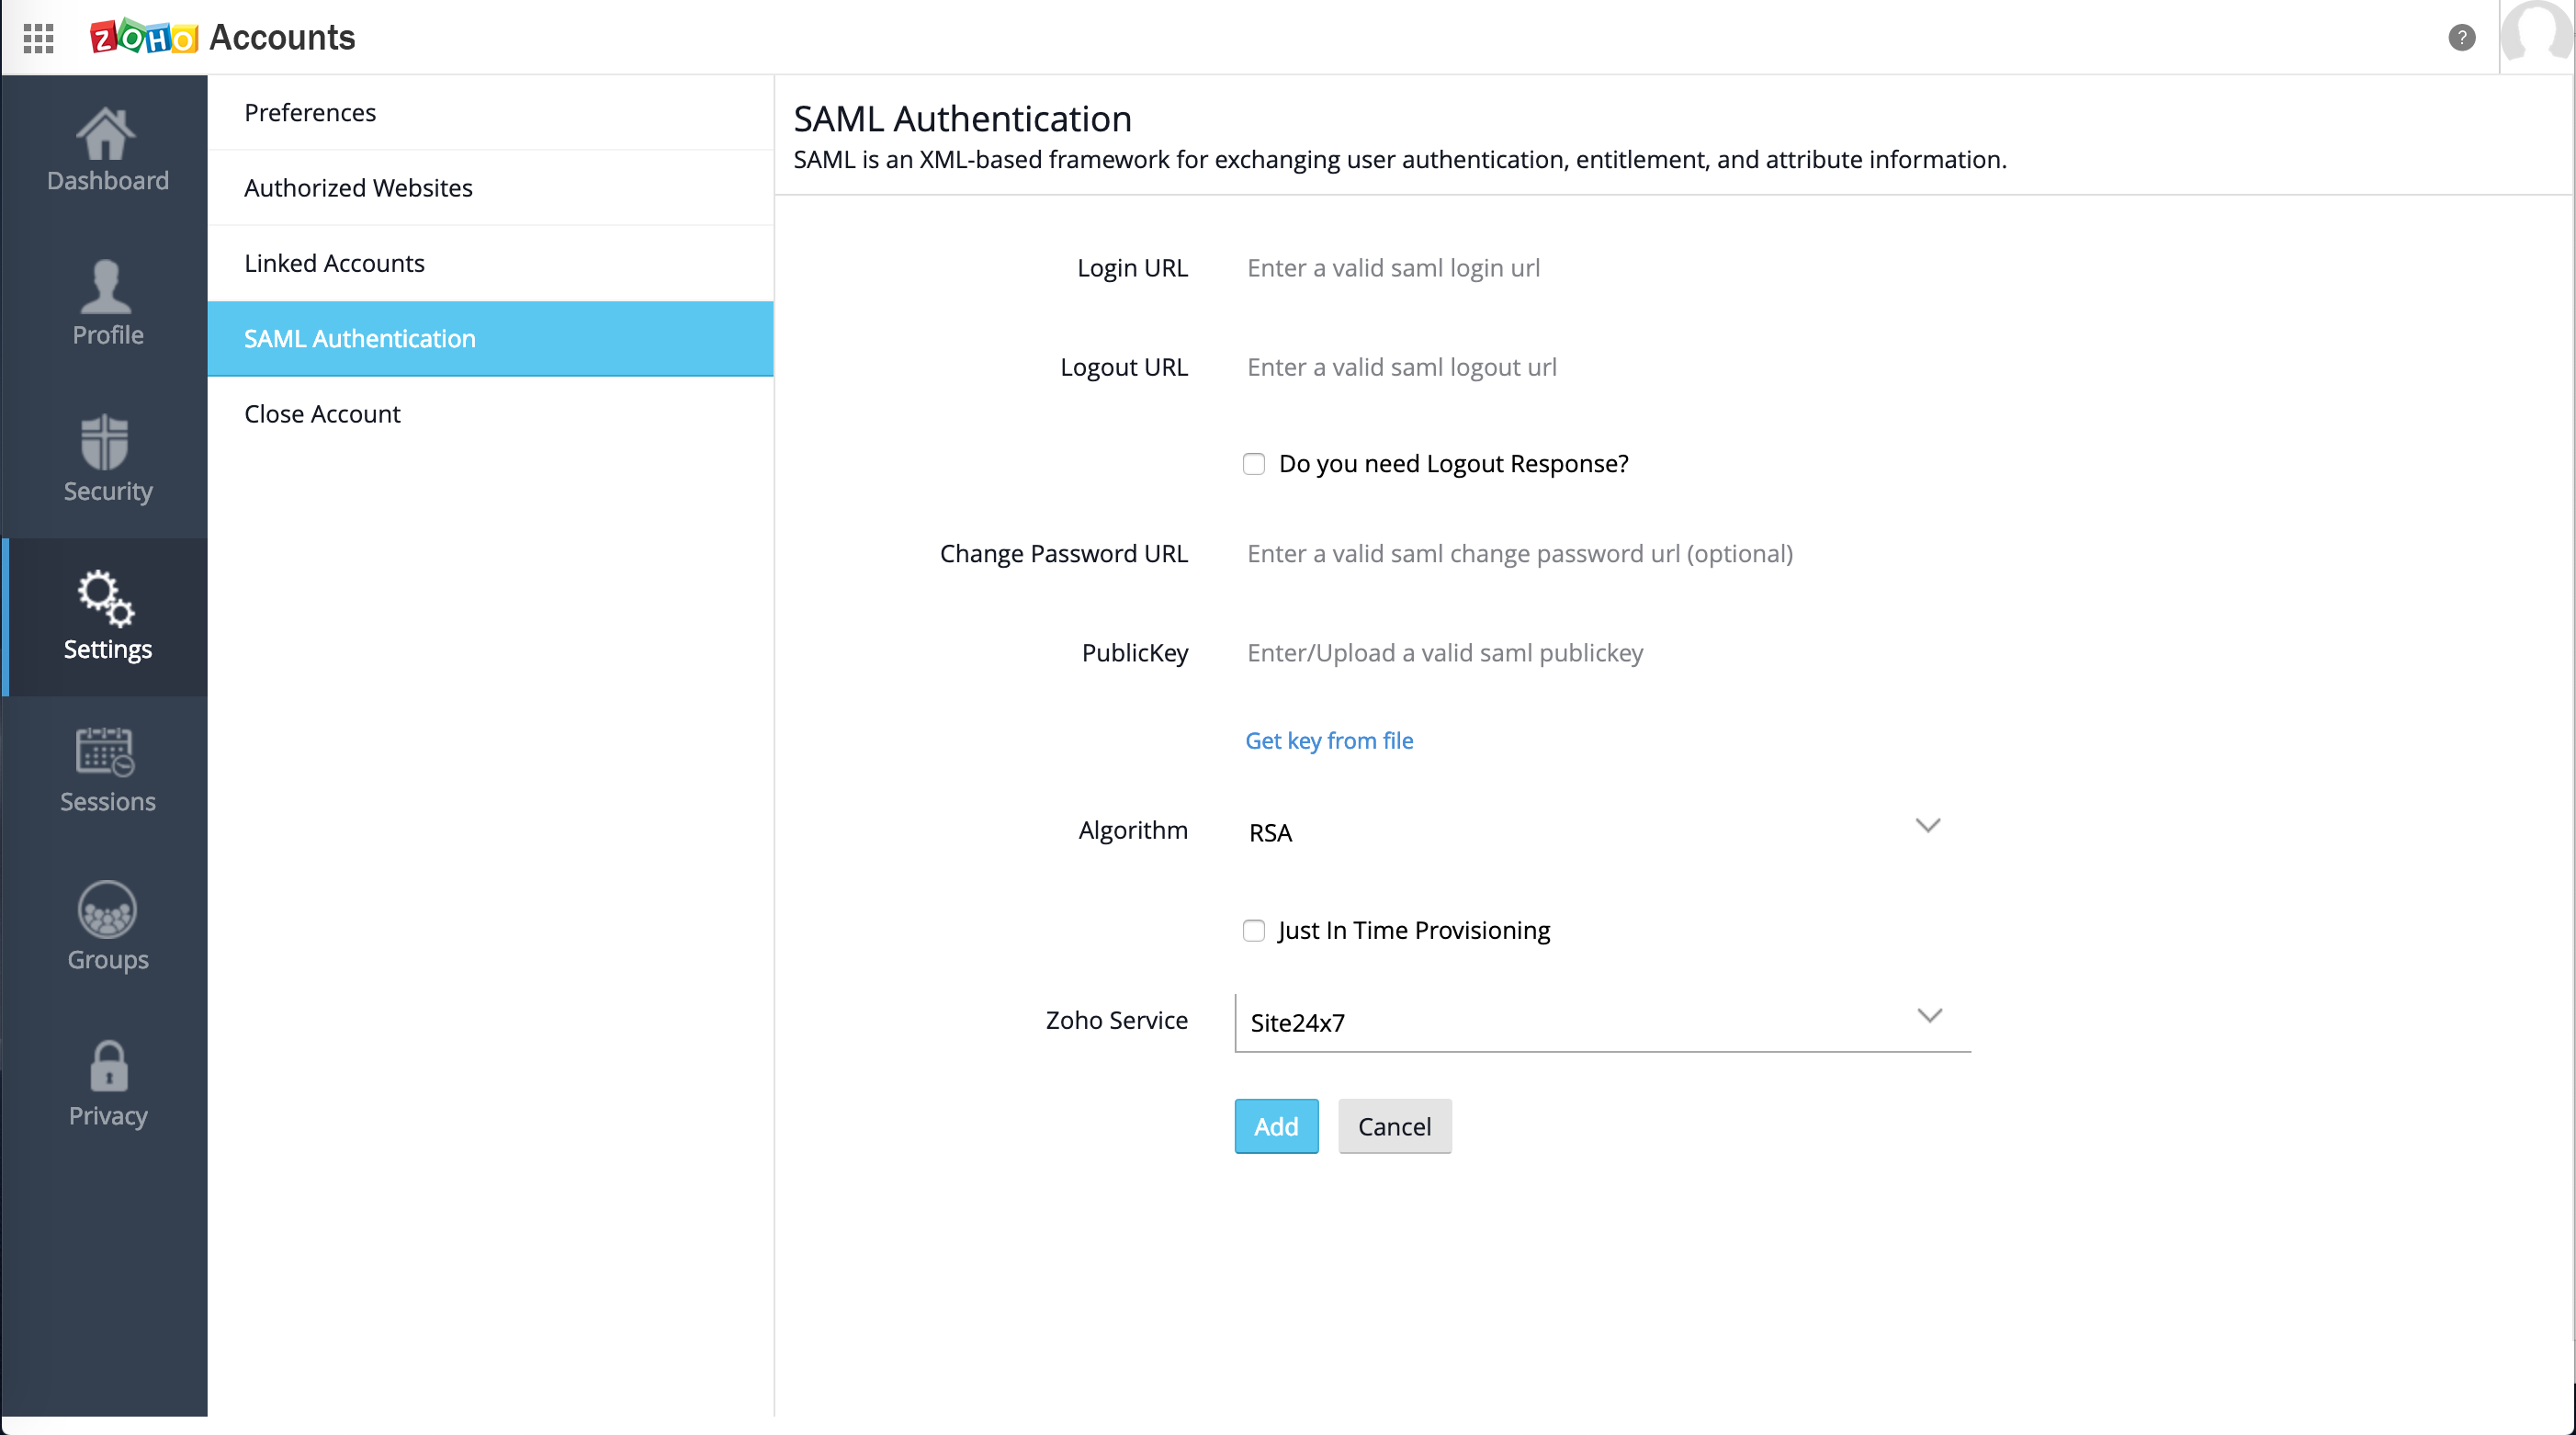 Set up SAML SSO authentication for my Site24x7 account with Okta